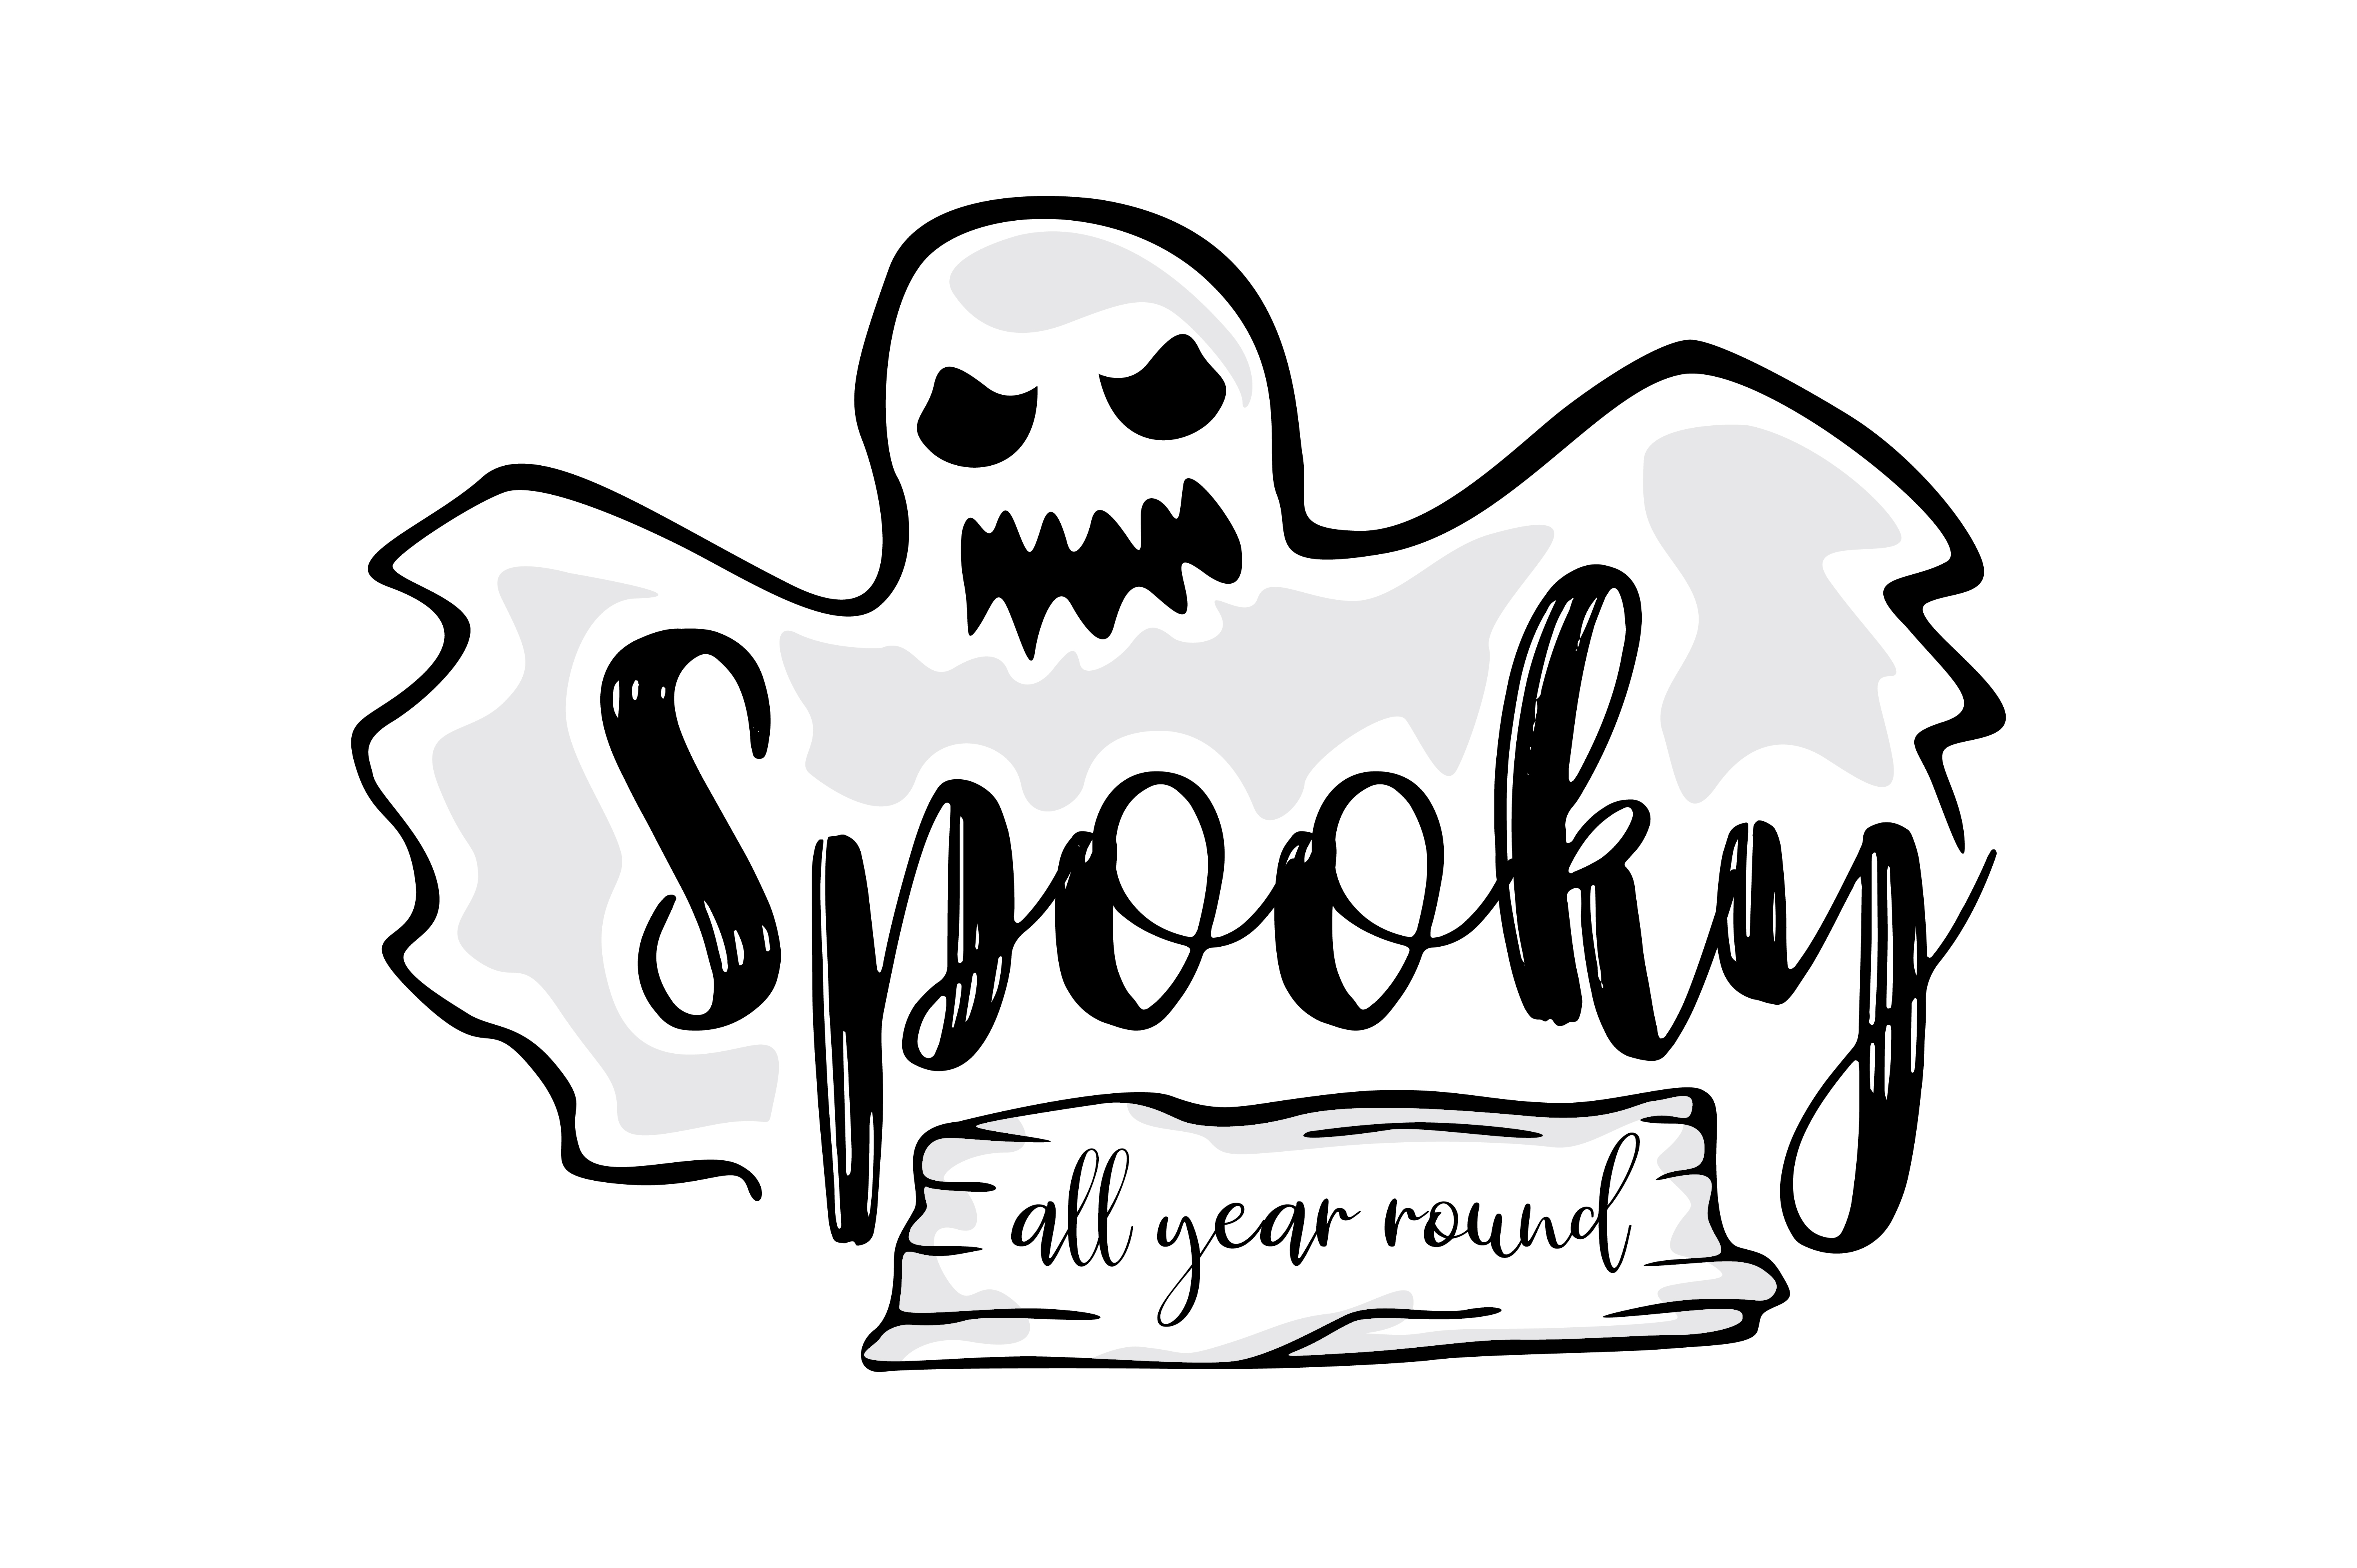 Download Free Spooky All Year Round Graphic By Thelucky Creative Fabrica for Cricut Explore, Silhouette and other cutting machines.